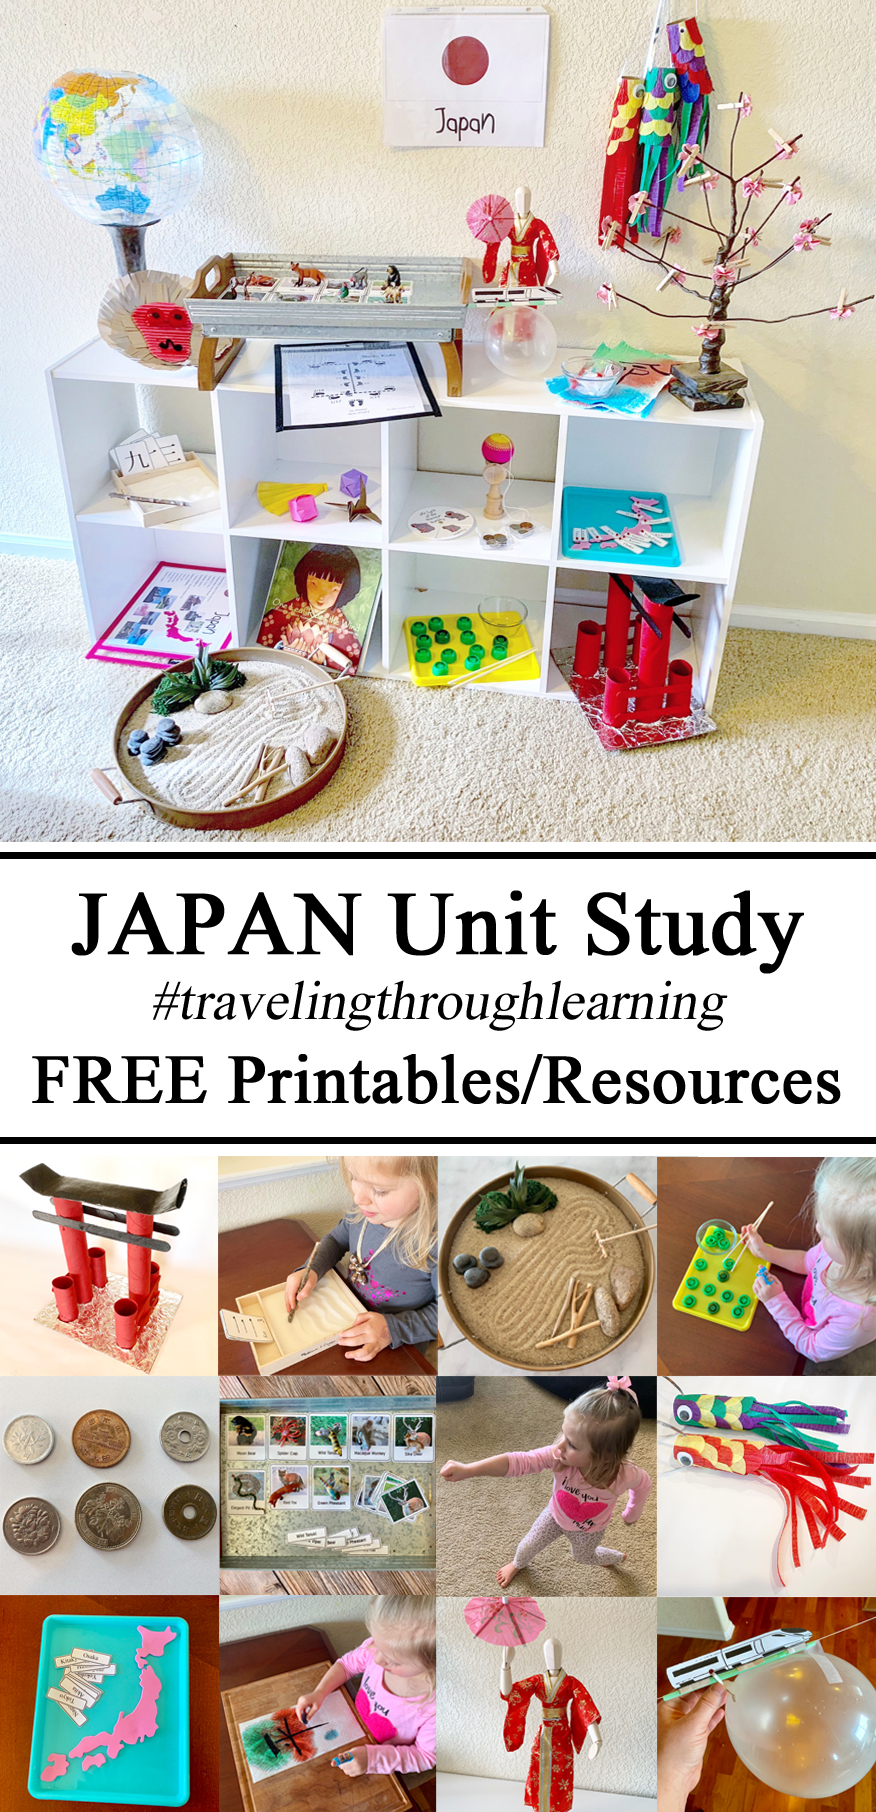 Japan Unit, Learning about Japanese Culture Kids Montessori Inspired Waldorf Homeschooling, Education, Learning Free Printables Printable Download Resources Preschool Learn Counting, Hands on Fine Motor Skills, Play Based STEM STEAM Education Shelf Classroom Ideas